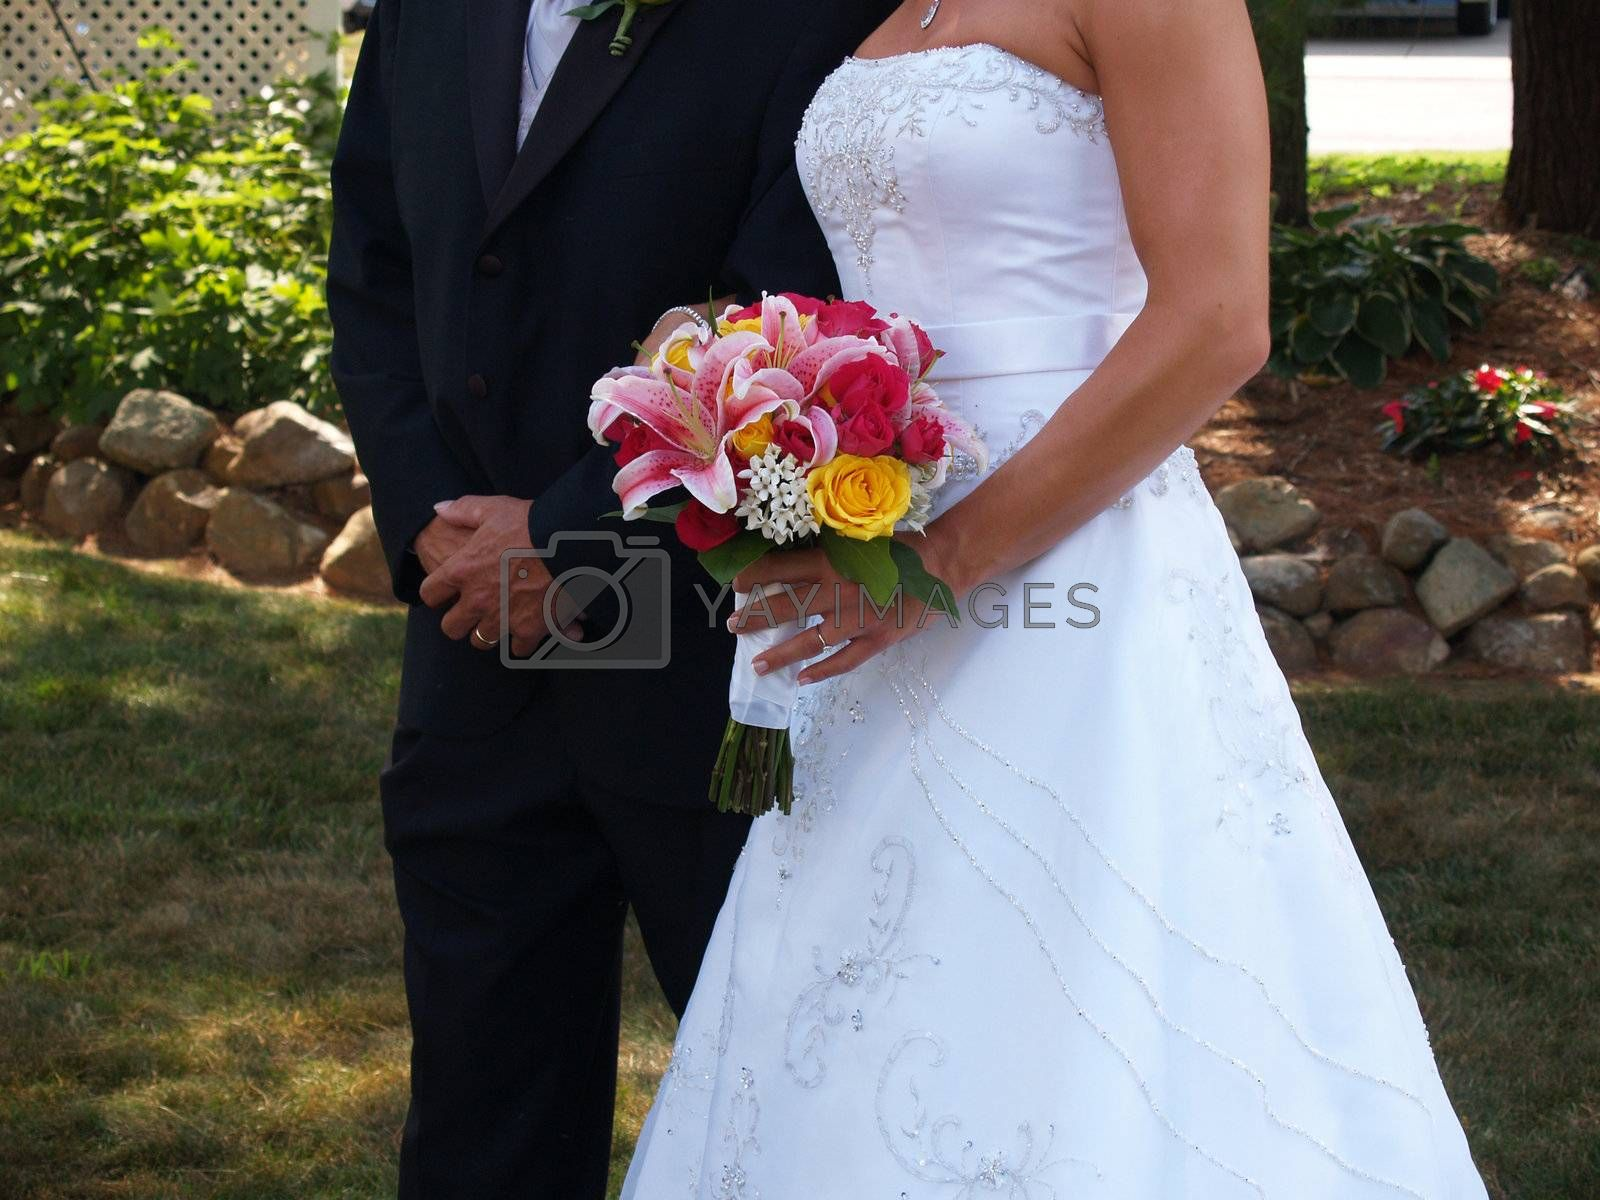 lower body shot of bride and groom